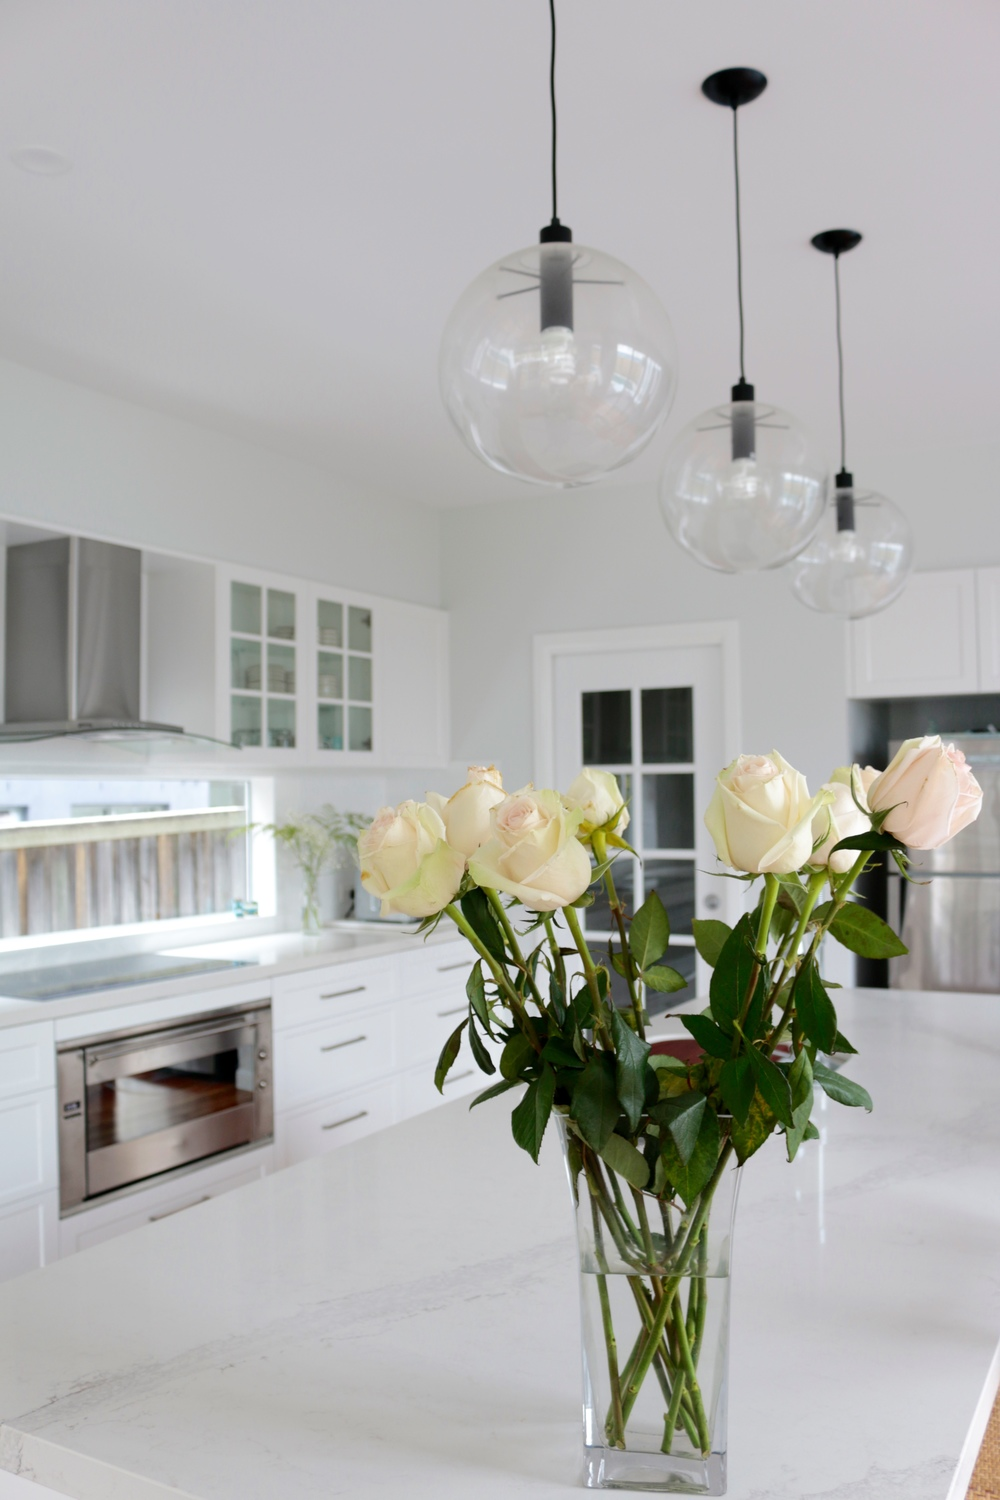 Interior Photography & Styling   Colour Consultant - Sonya Romeo,  Lee & Allan Design   Private Residence - Casuarina, NSW